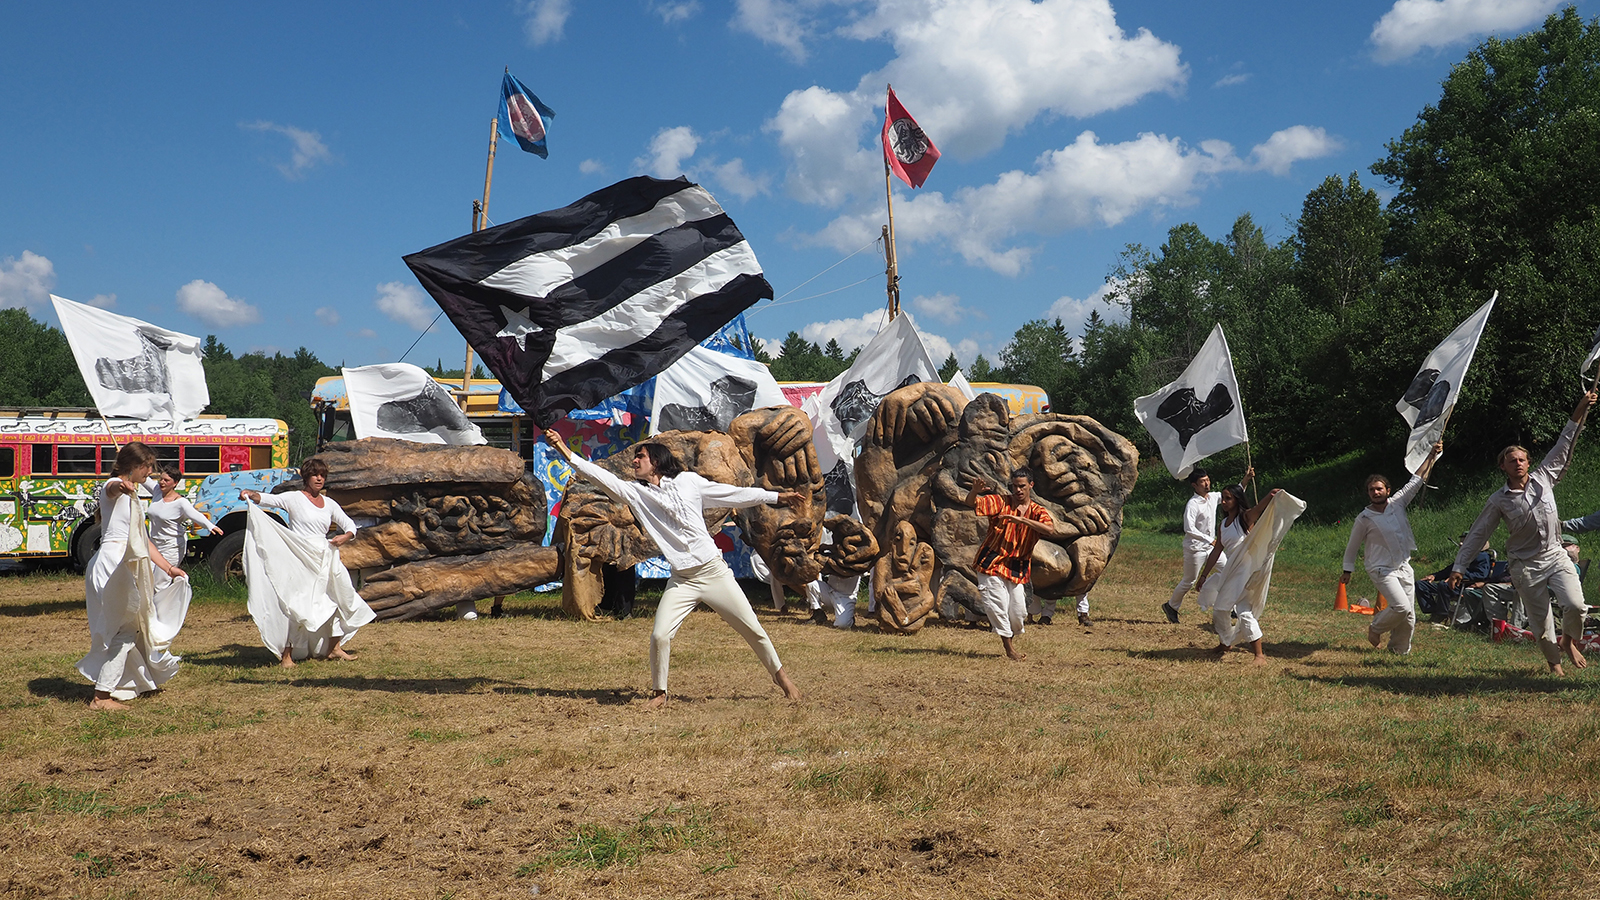 [Bread and Puppet TheaterDiagonal Life Circus] Photo Courtesy of Artist